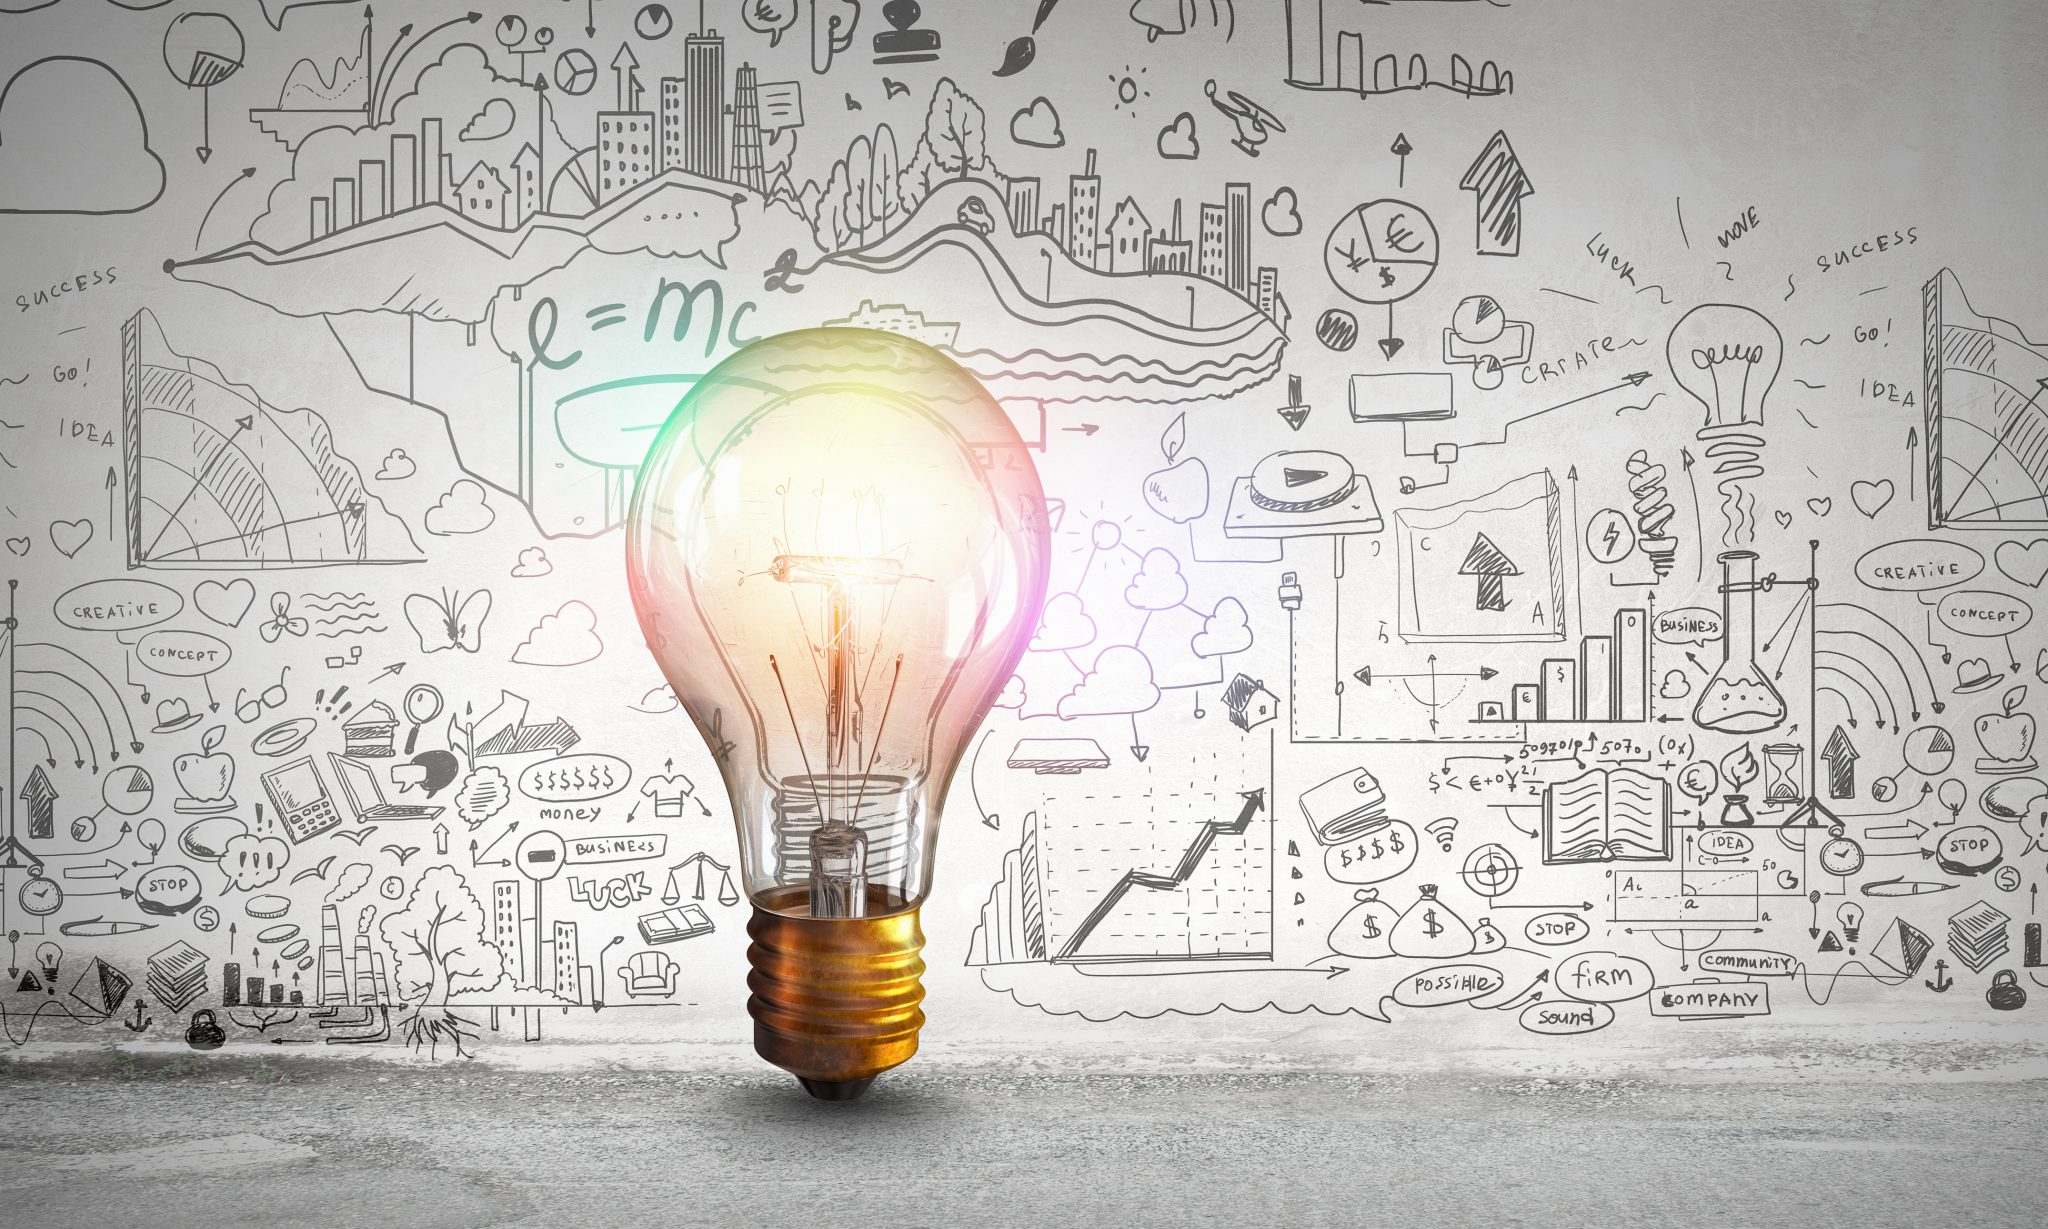 Glowing light bulb and business ideas sketch